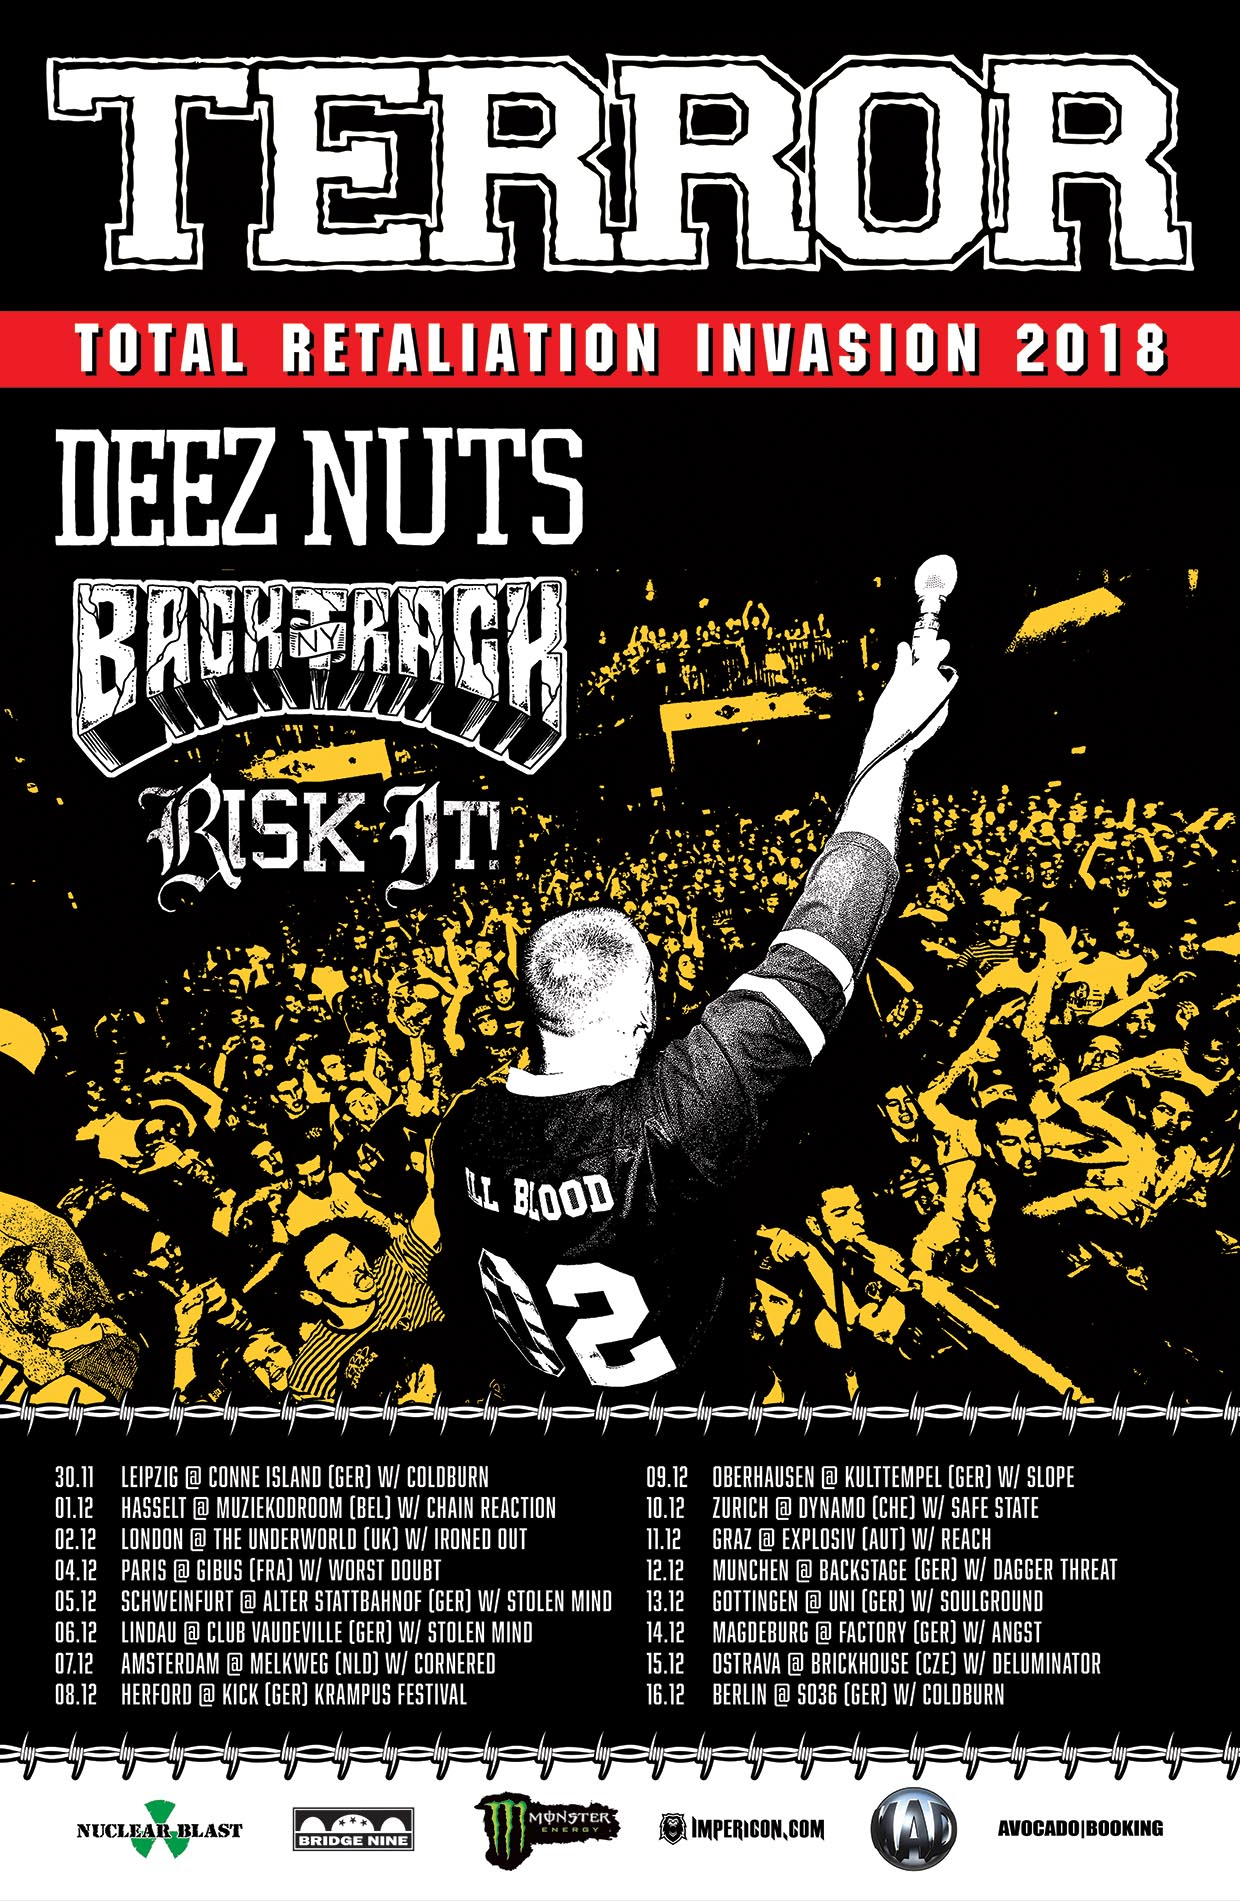 Bringing with them Deez Nuts, Backtrack and Risk It as well as some more awesome bands. Better not miss this!